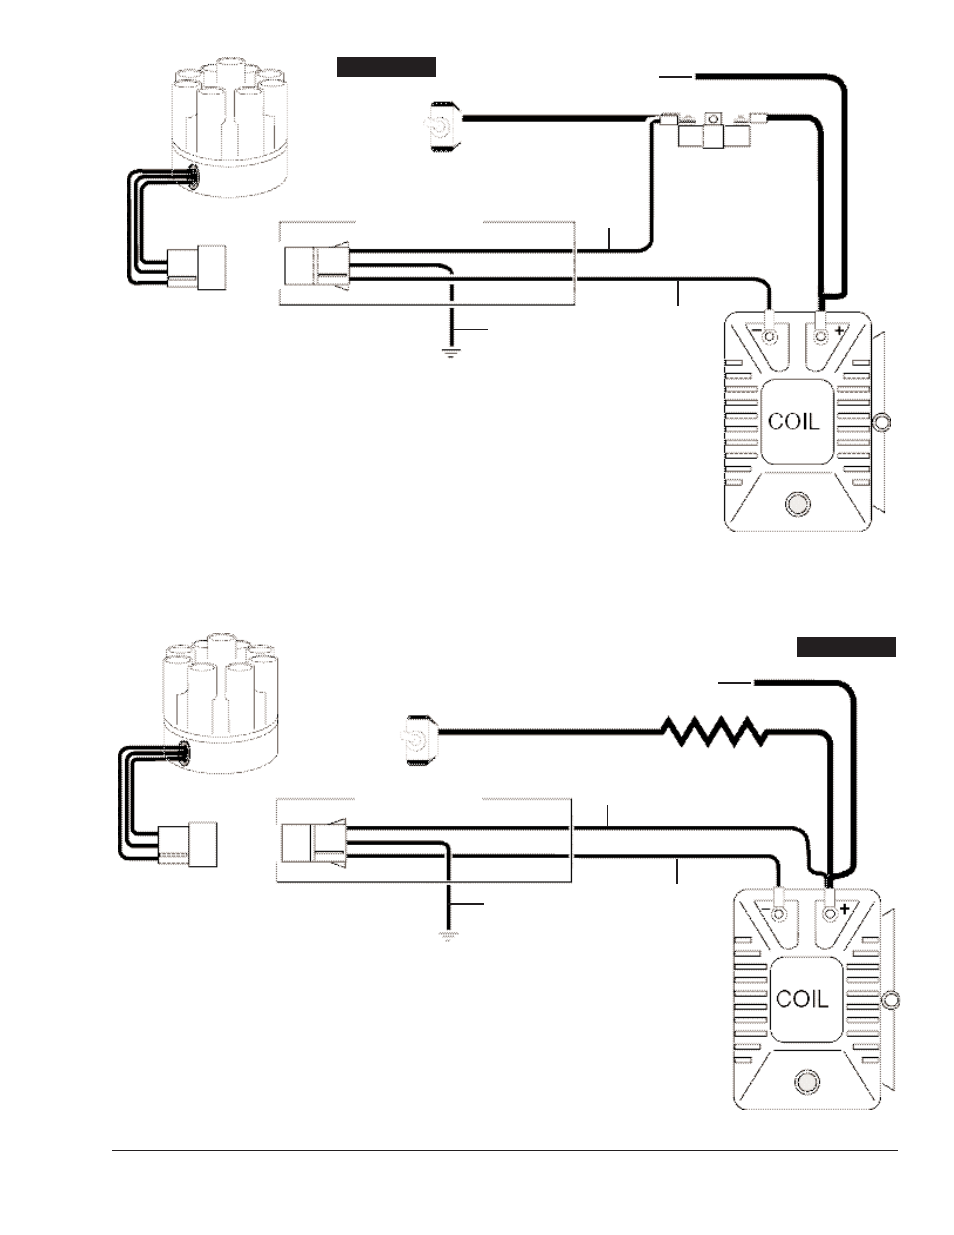 Mallory Ignition Wiring Diagram Unilite from www.manualsdir.com